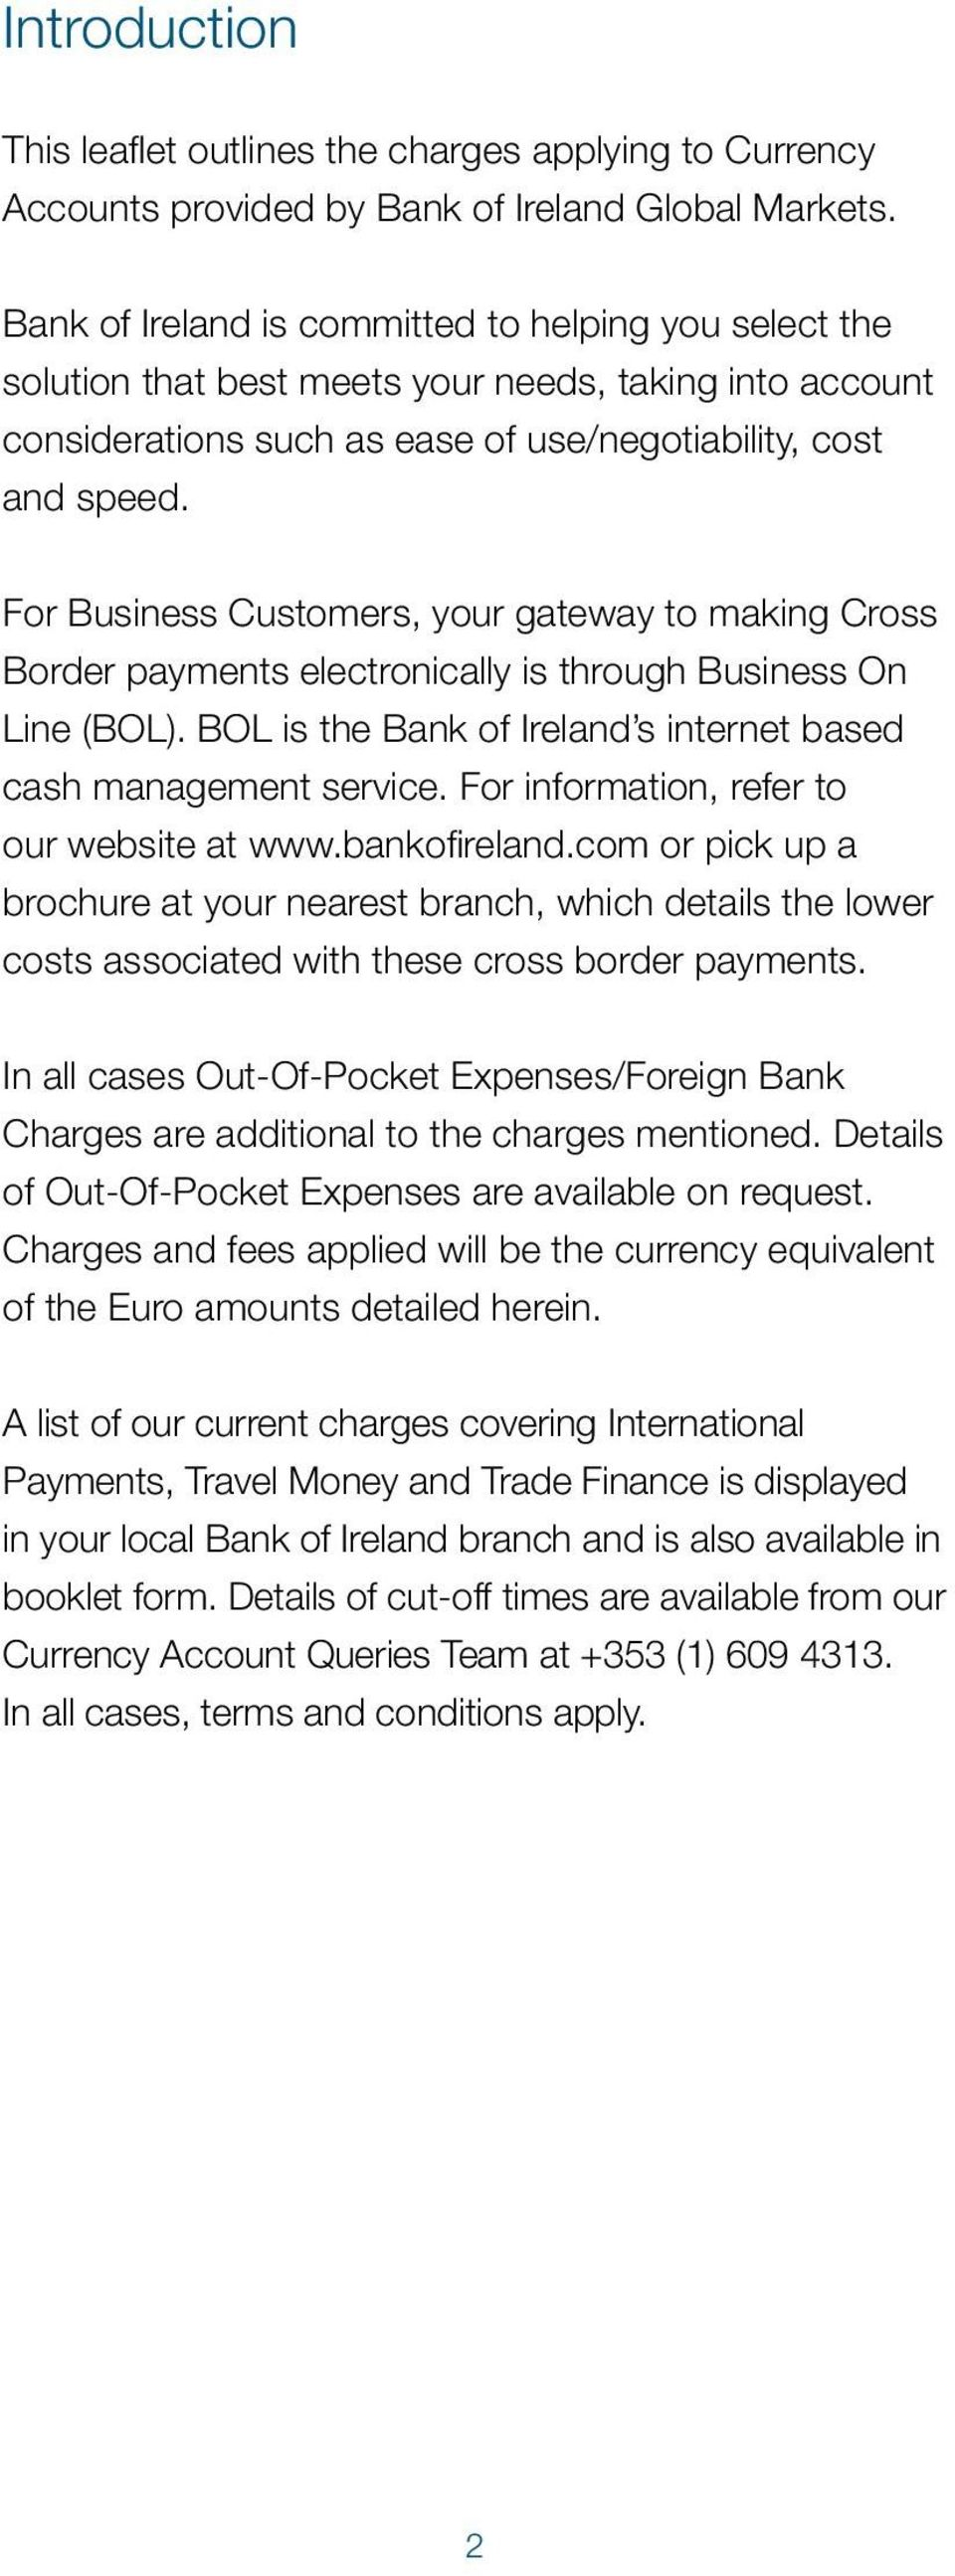 For Business Customers, your gateway to making Cross Border payments electronically is through Business On Line (BOL). BOL is the Bank of Ireland s internet based cash management service.